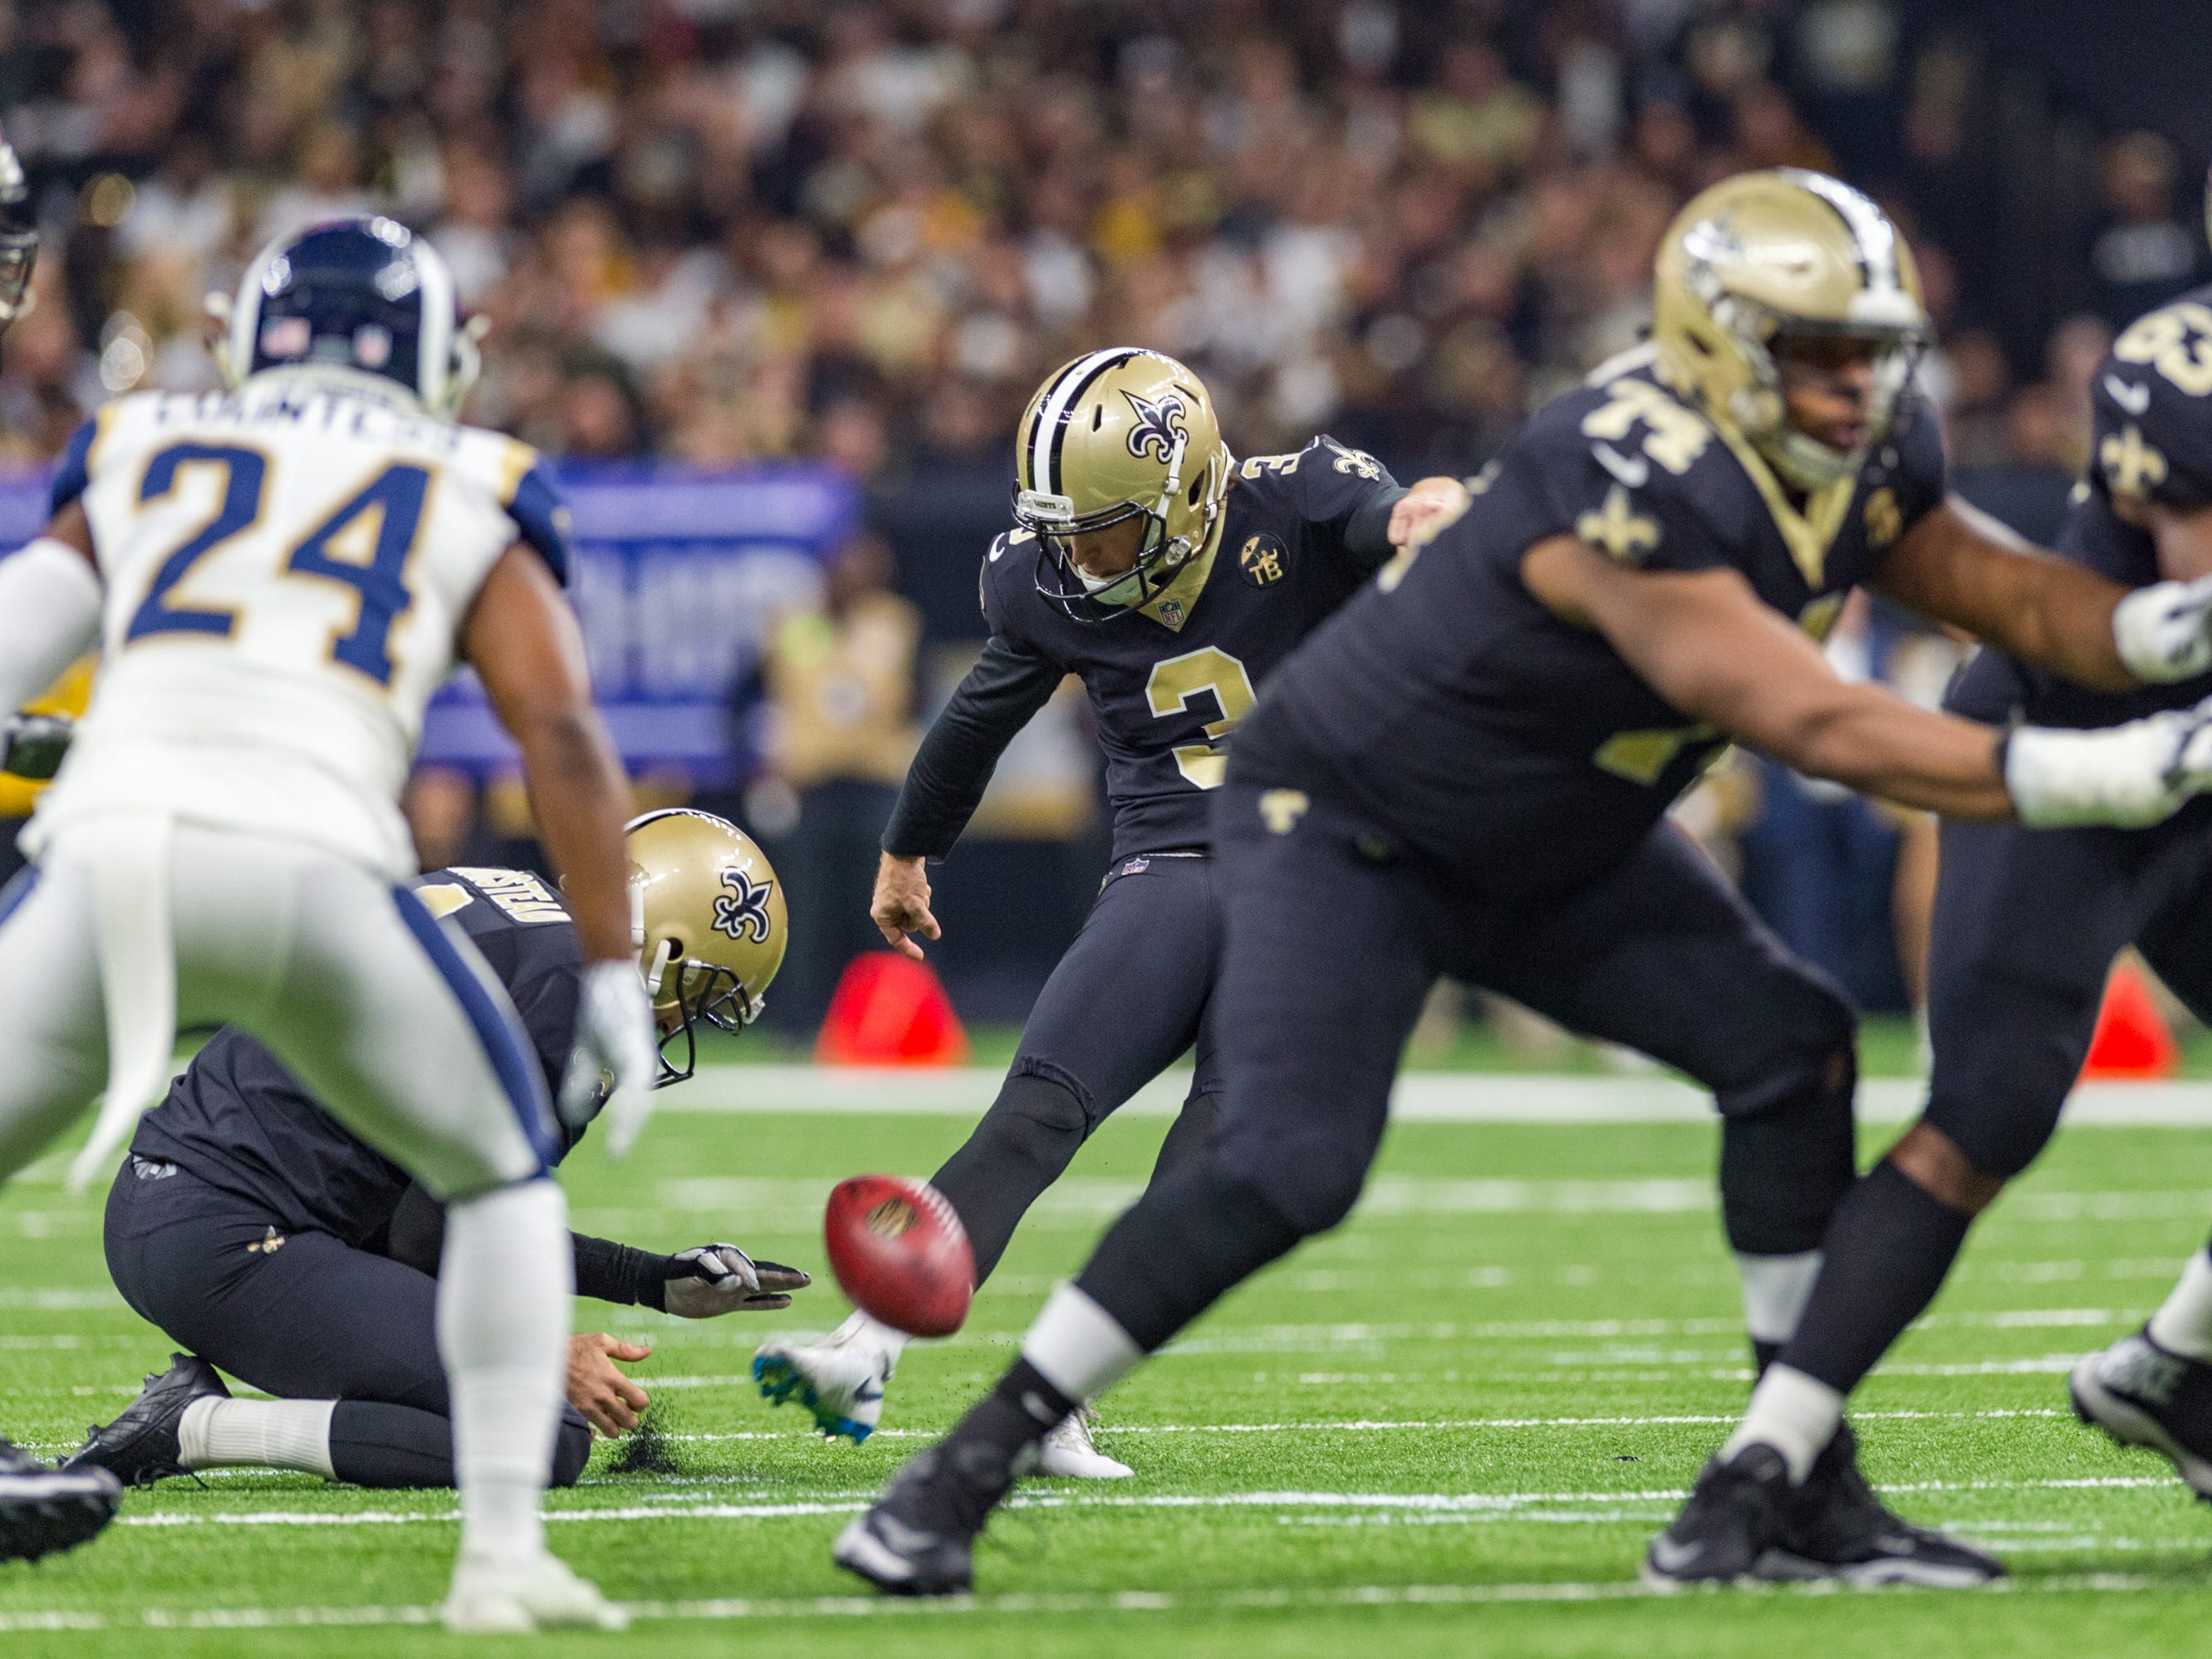 Kicker Wil Lutz during the NFC Championship playoff football game between the New Orleans Saints and the Los Angeles Rams at the Mercedes-Benz Superdome in New Orleans. Sunday, Jan. 20, 2019.